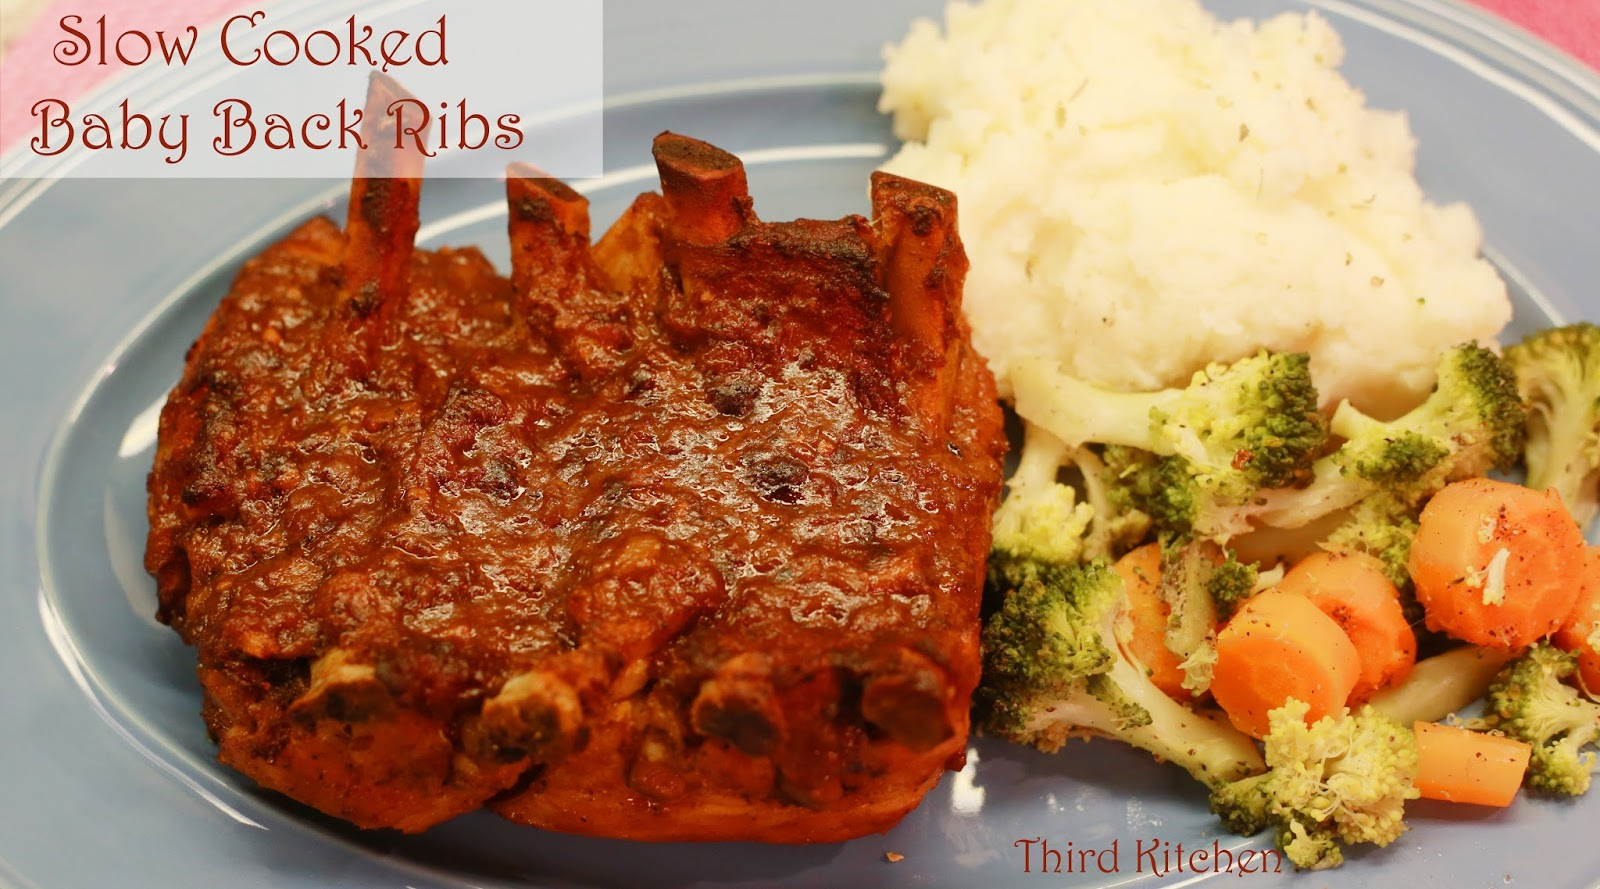 baby back ribs slow cooker third kitchen cooked baby back ribs 30911